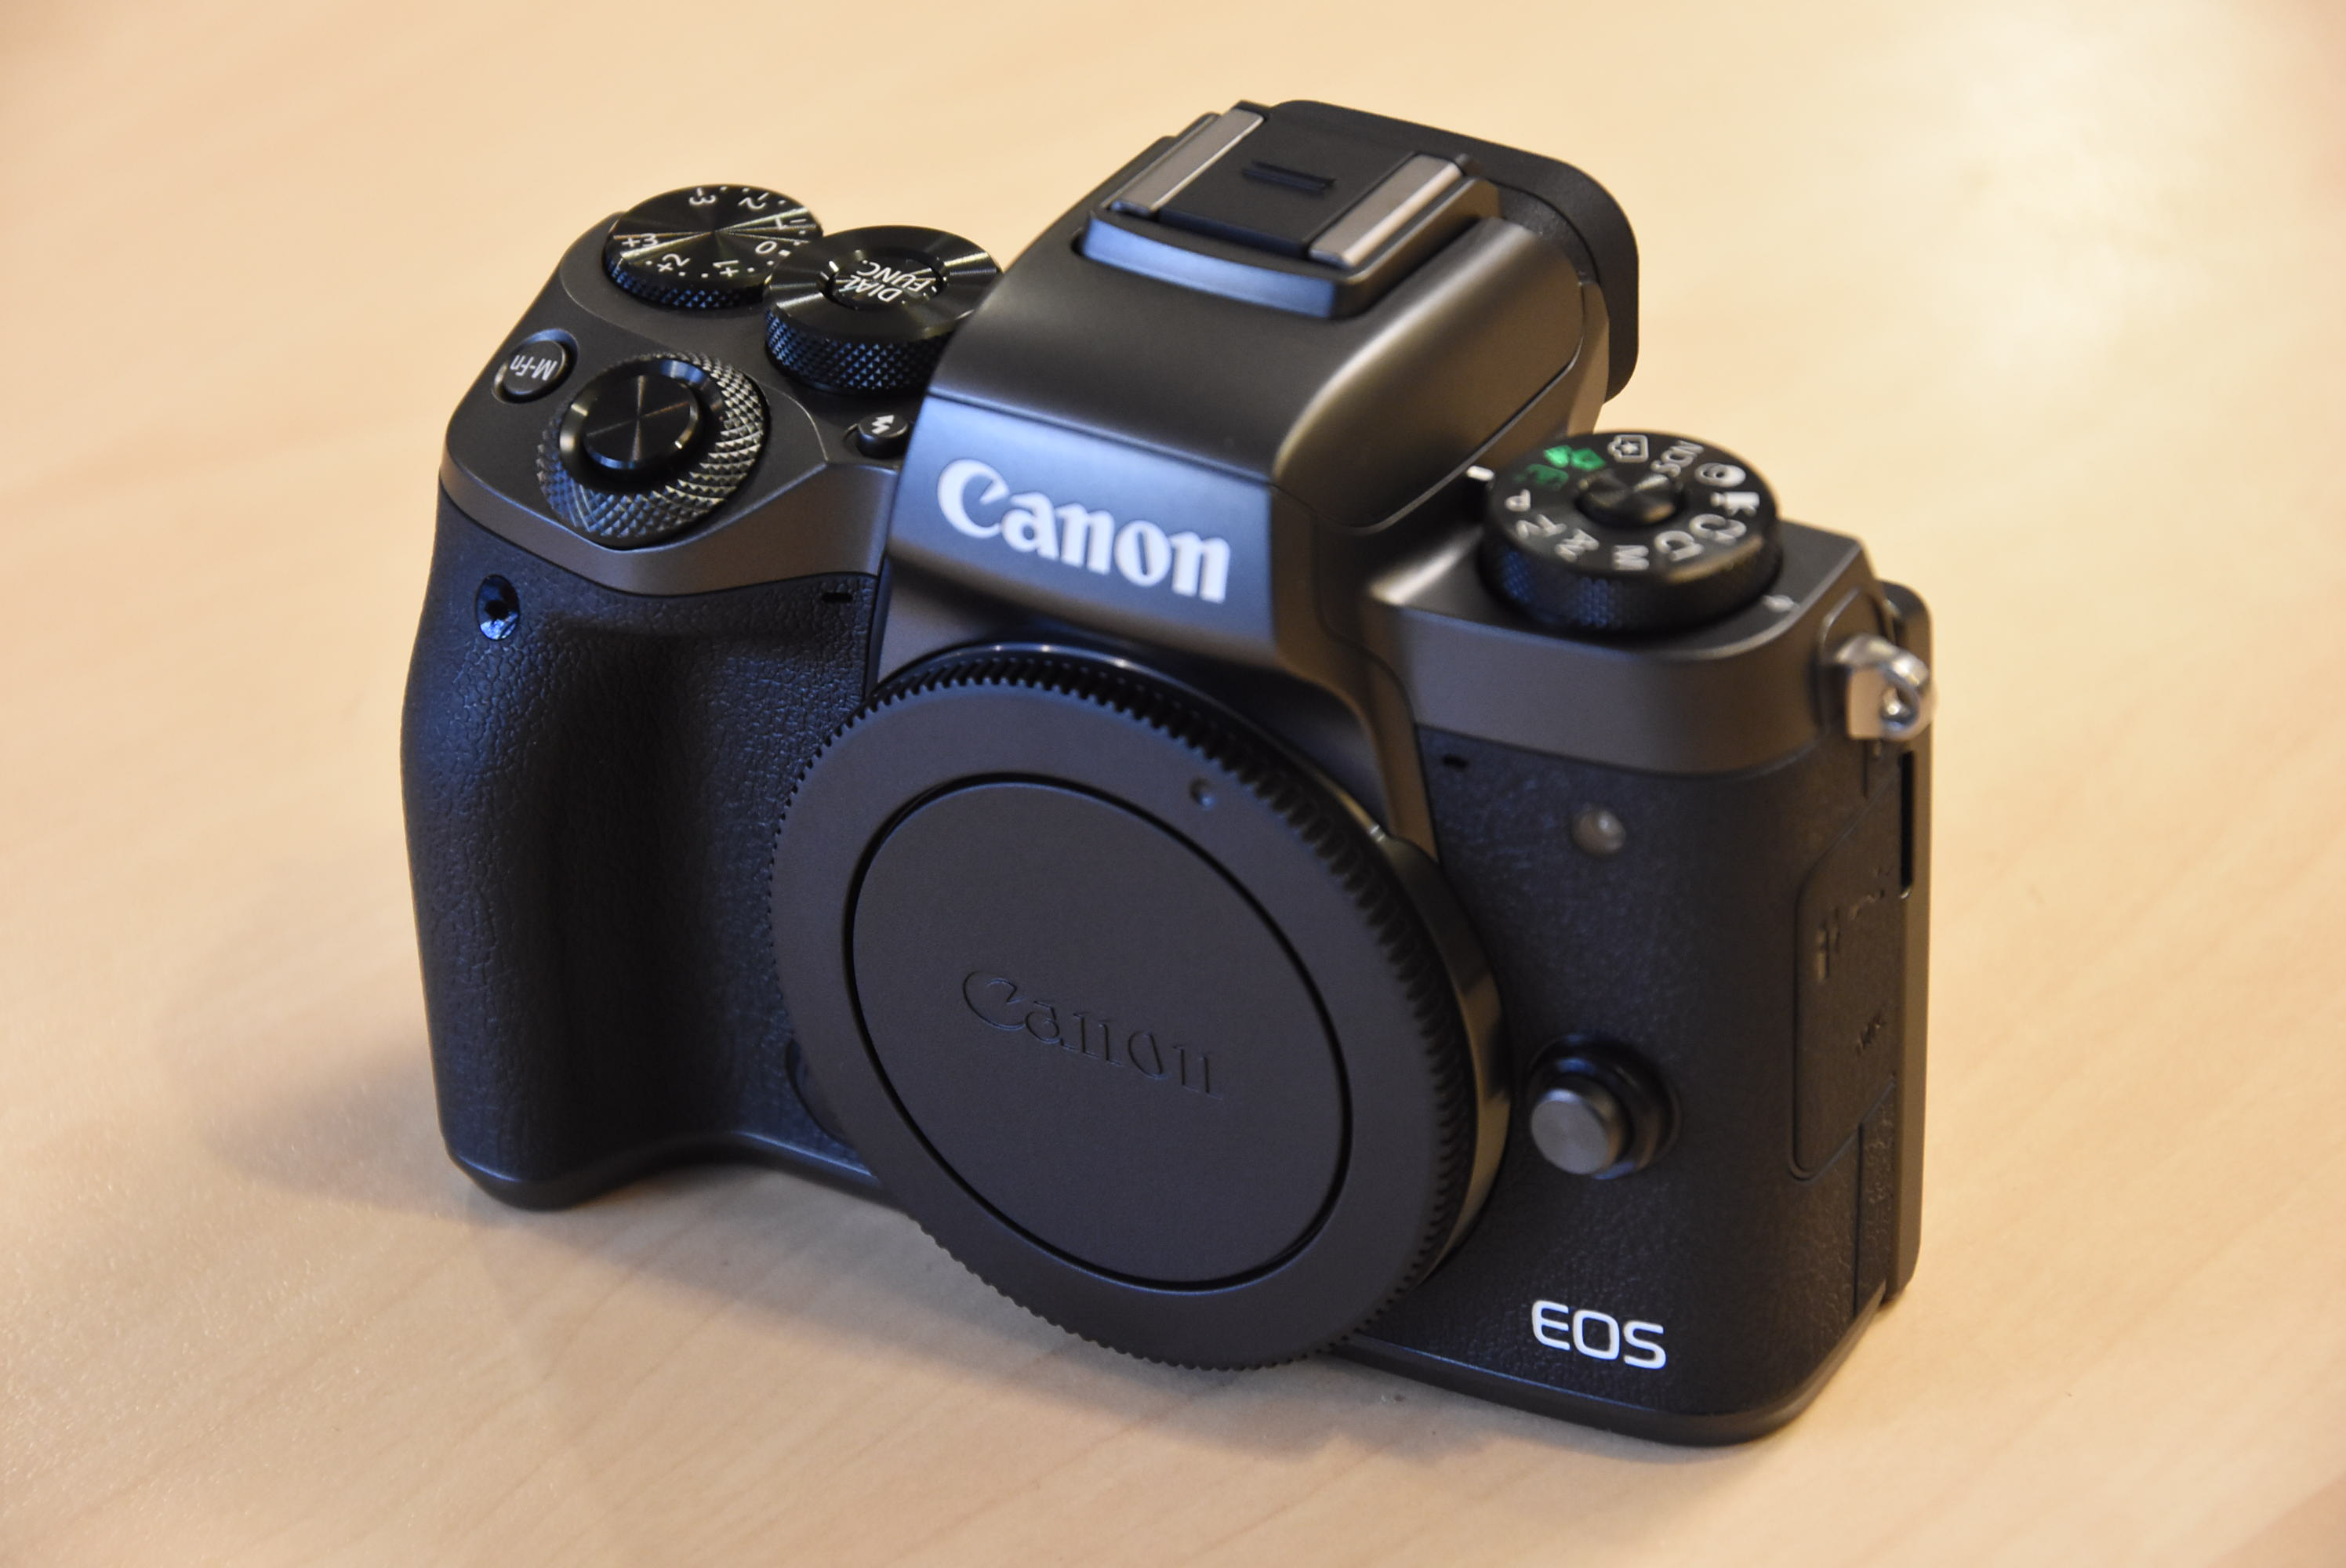 Canon-EOS-M5-mirrorless-camera-2.jpg